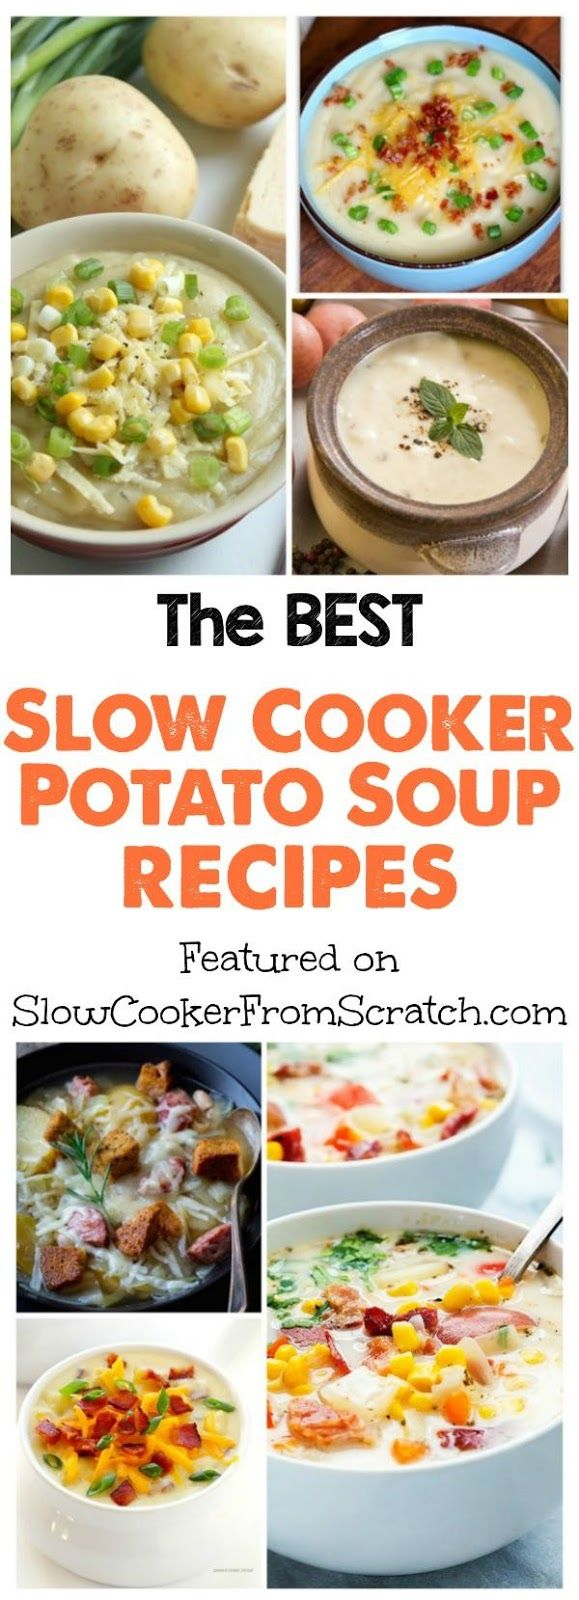 Potato Soup has to be the ultimate cold weather comfort food, and slow cooker potato soup is an easy and delicous dinner option when it's cold outside! Here are THE BEST Slow Cooker Potato Soup Recipes from food bloggers all around the web! [featured on SlowCookerFromScratch.com]